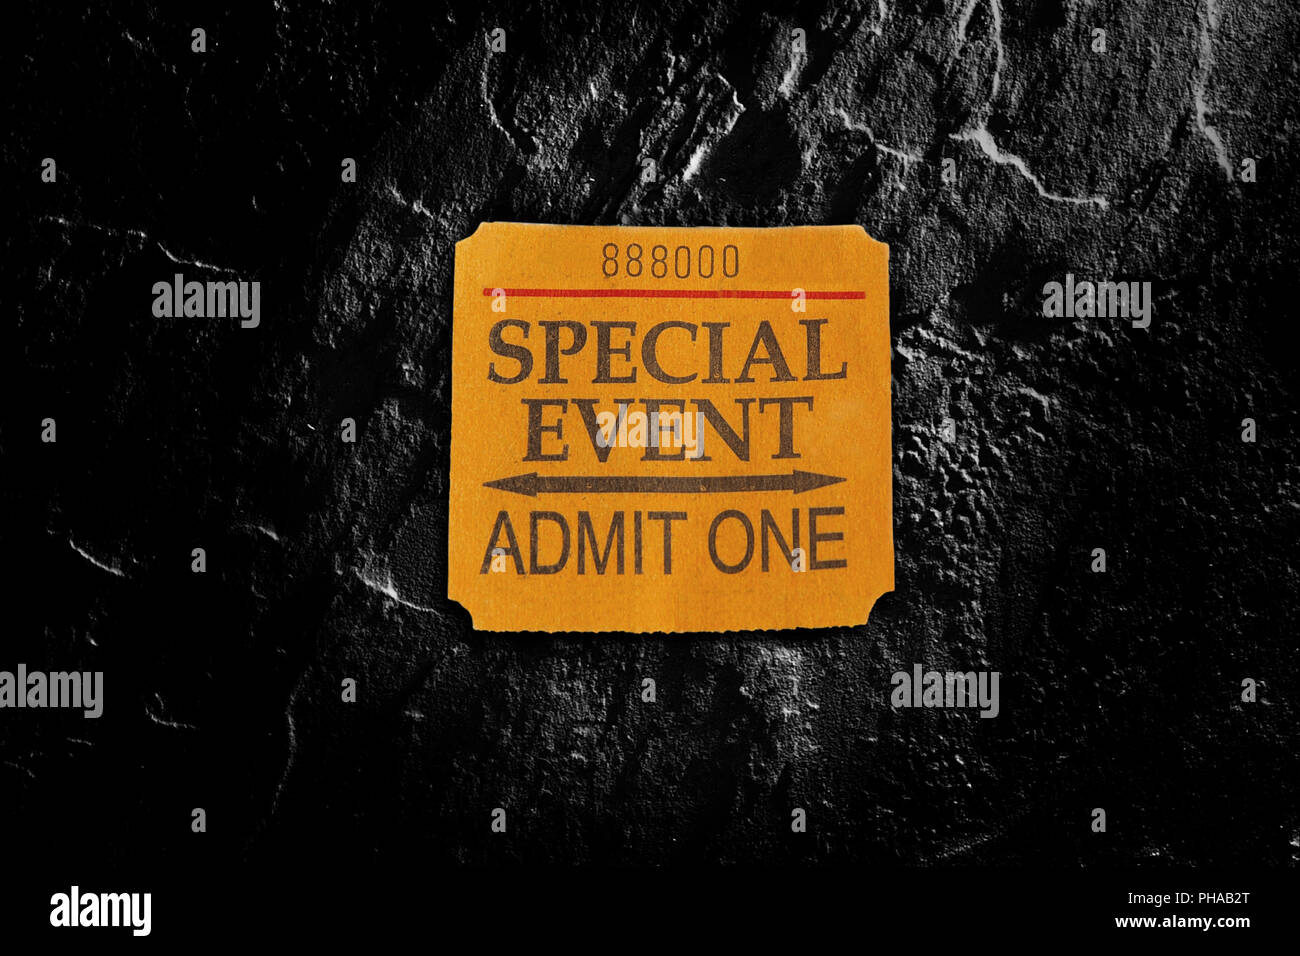 Special Event ticket stub - Stock Image